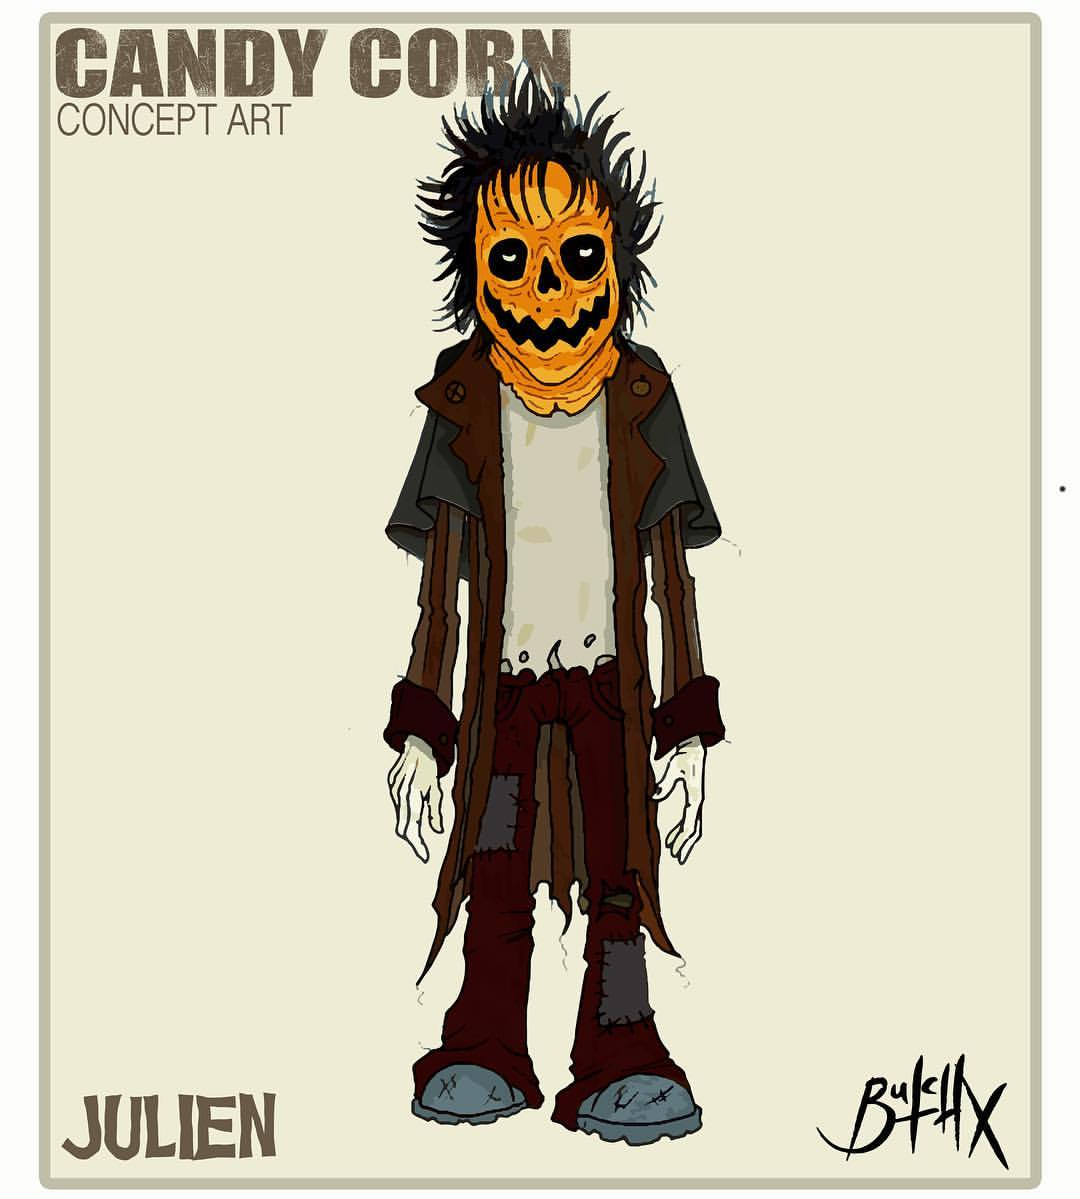 'Candy Corn' Julien concept art